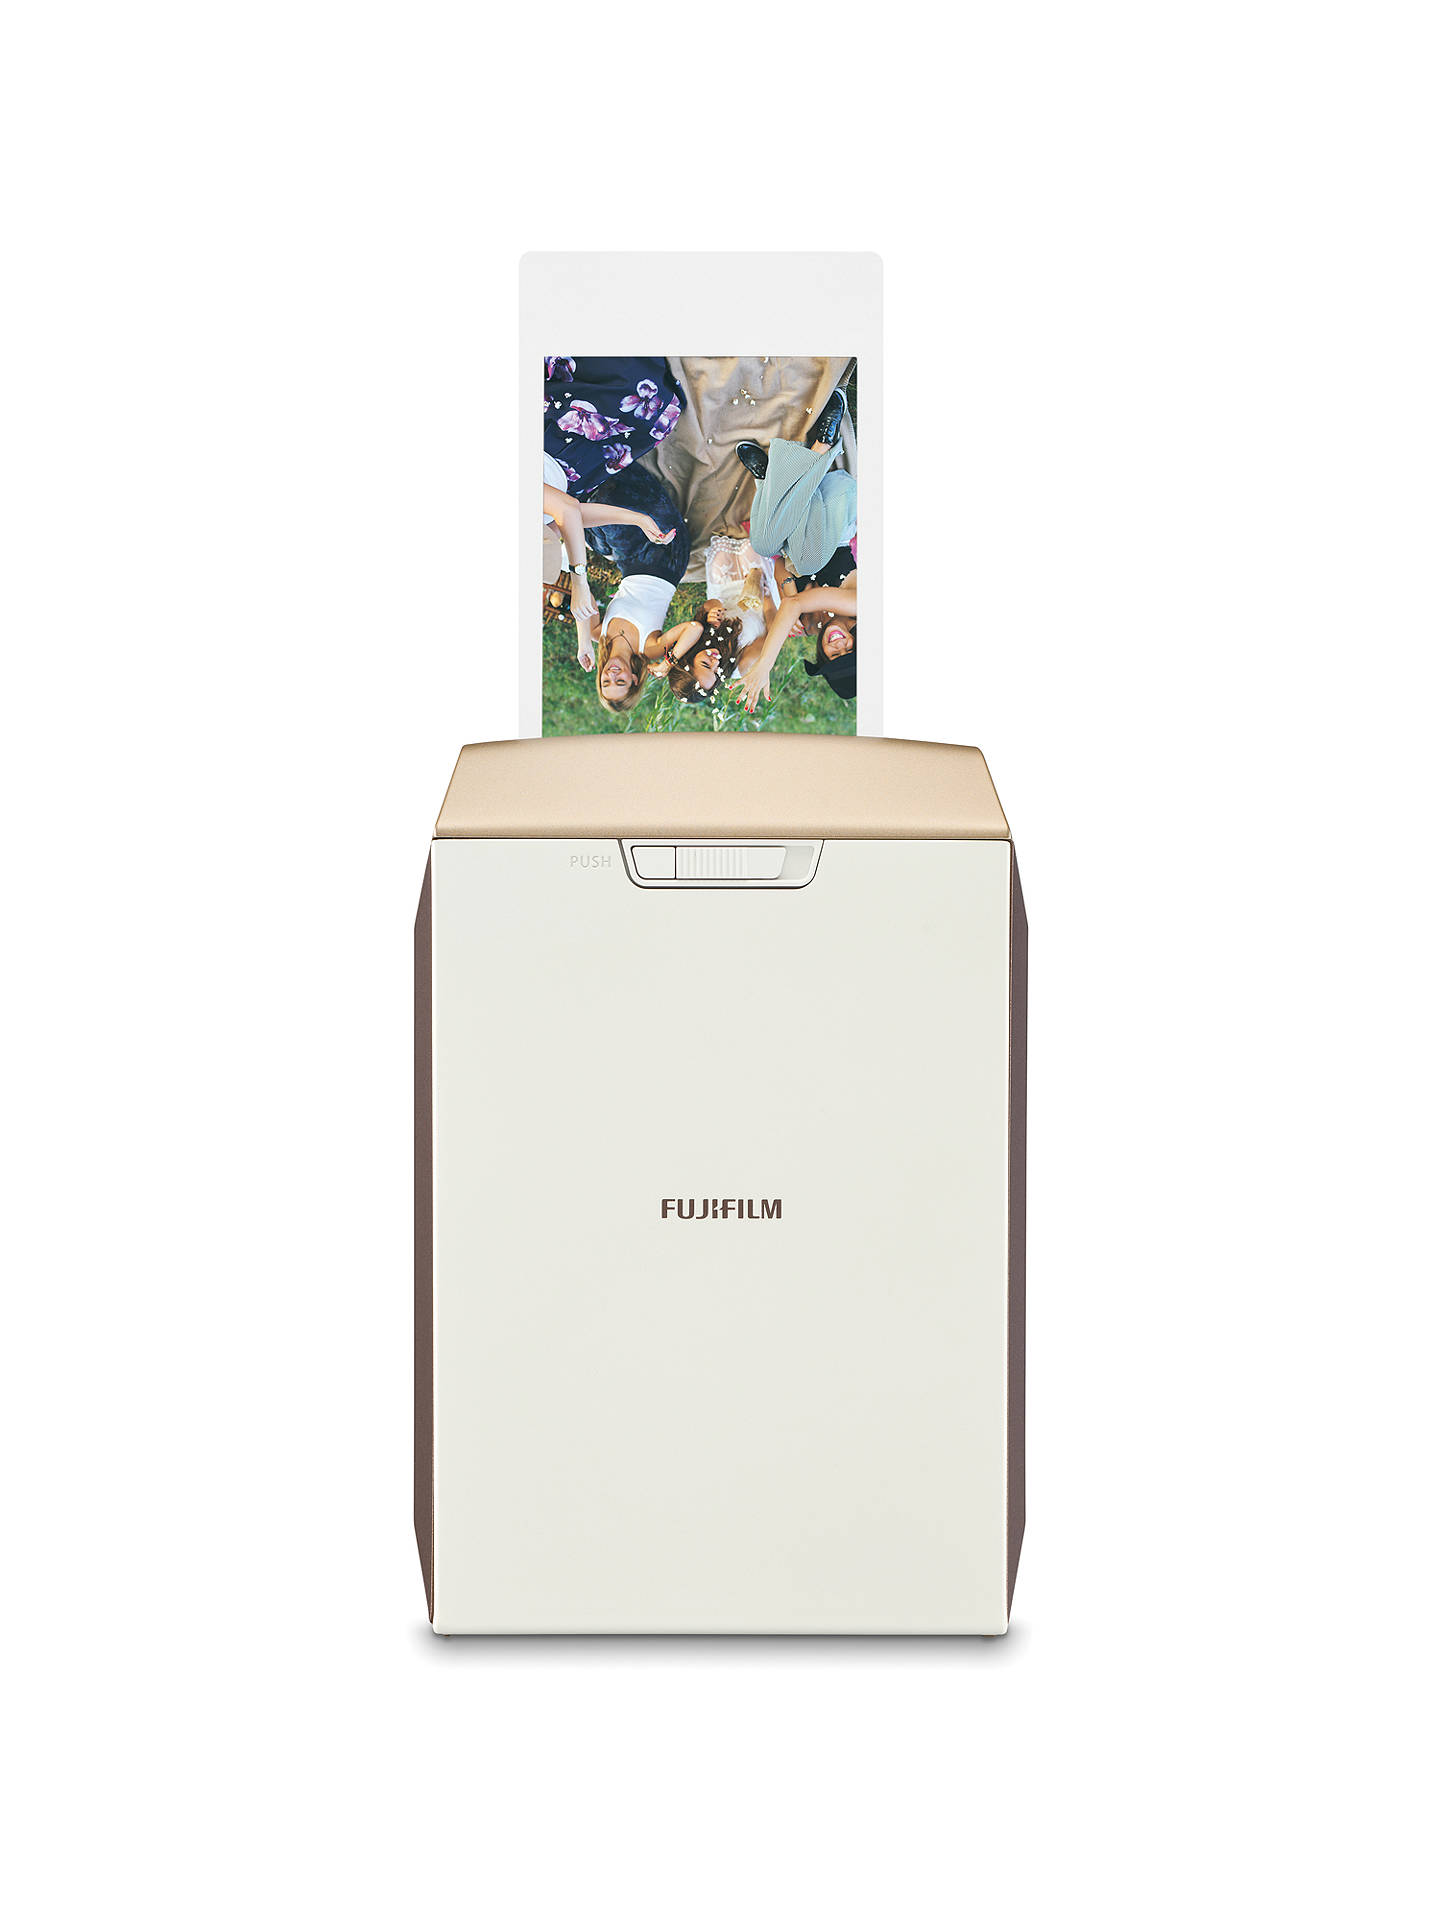 Buy Fujifilm Instax Share SP-2 Mobile Photo Printer with 10 Shots, Gold Online at johnlewis.com